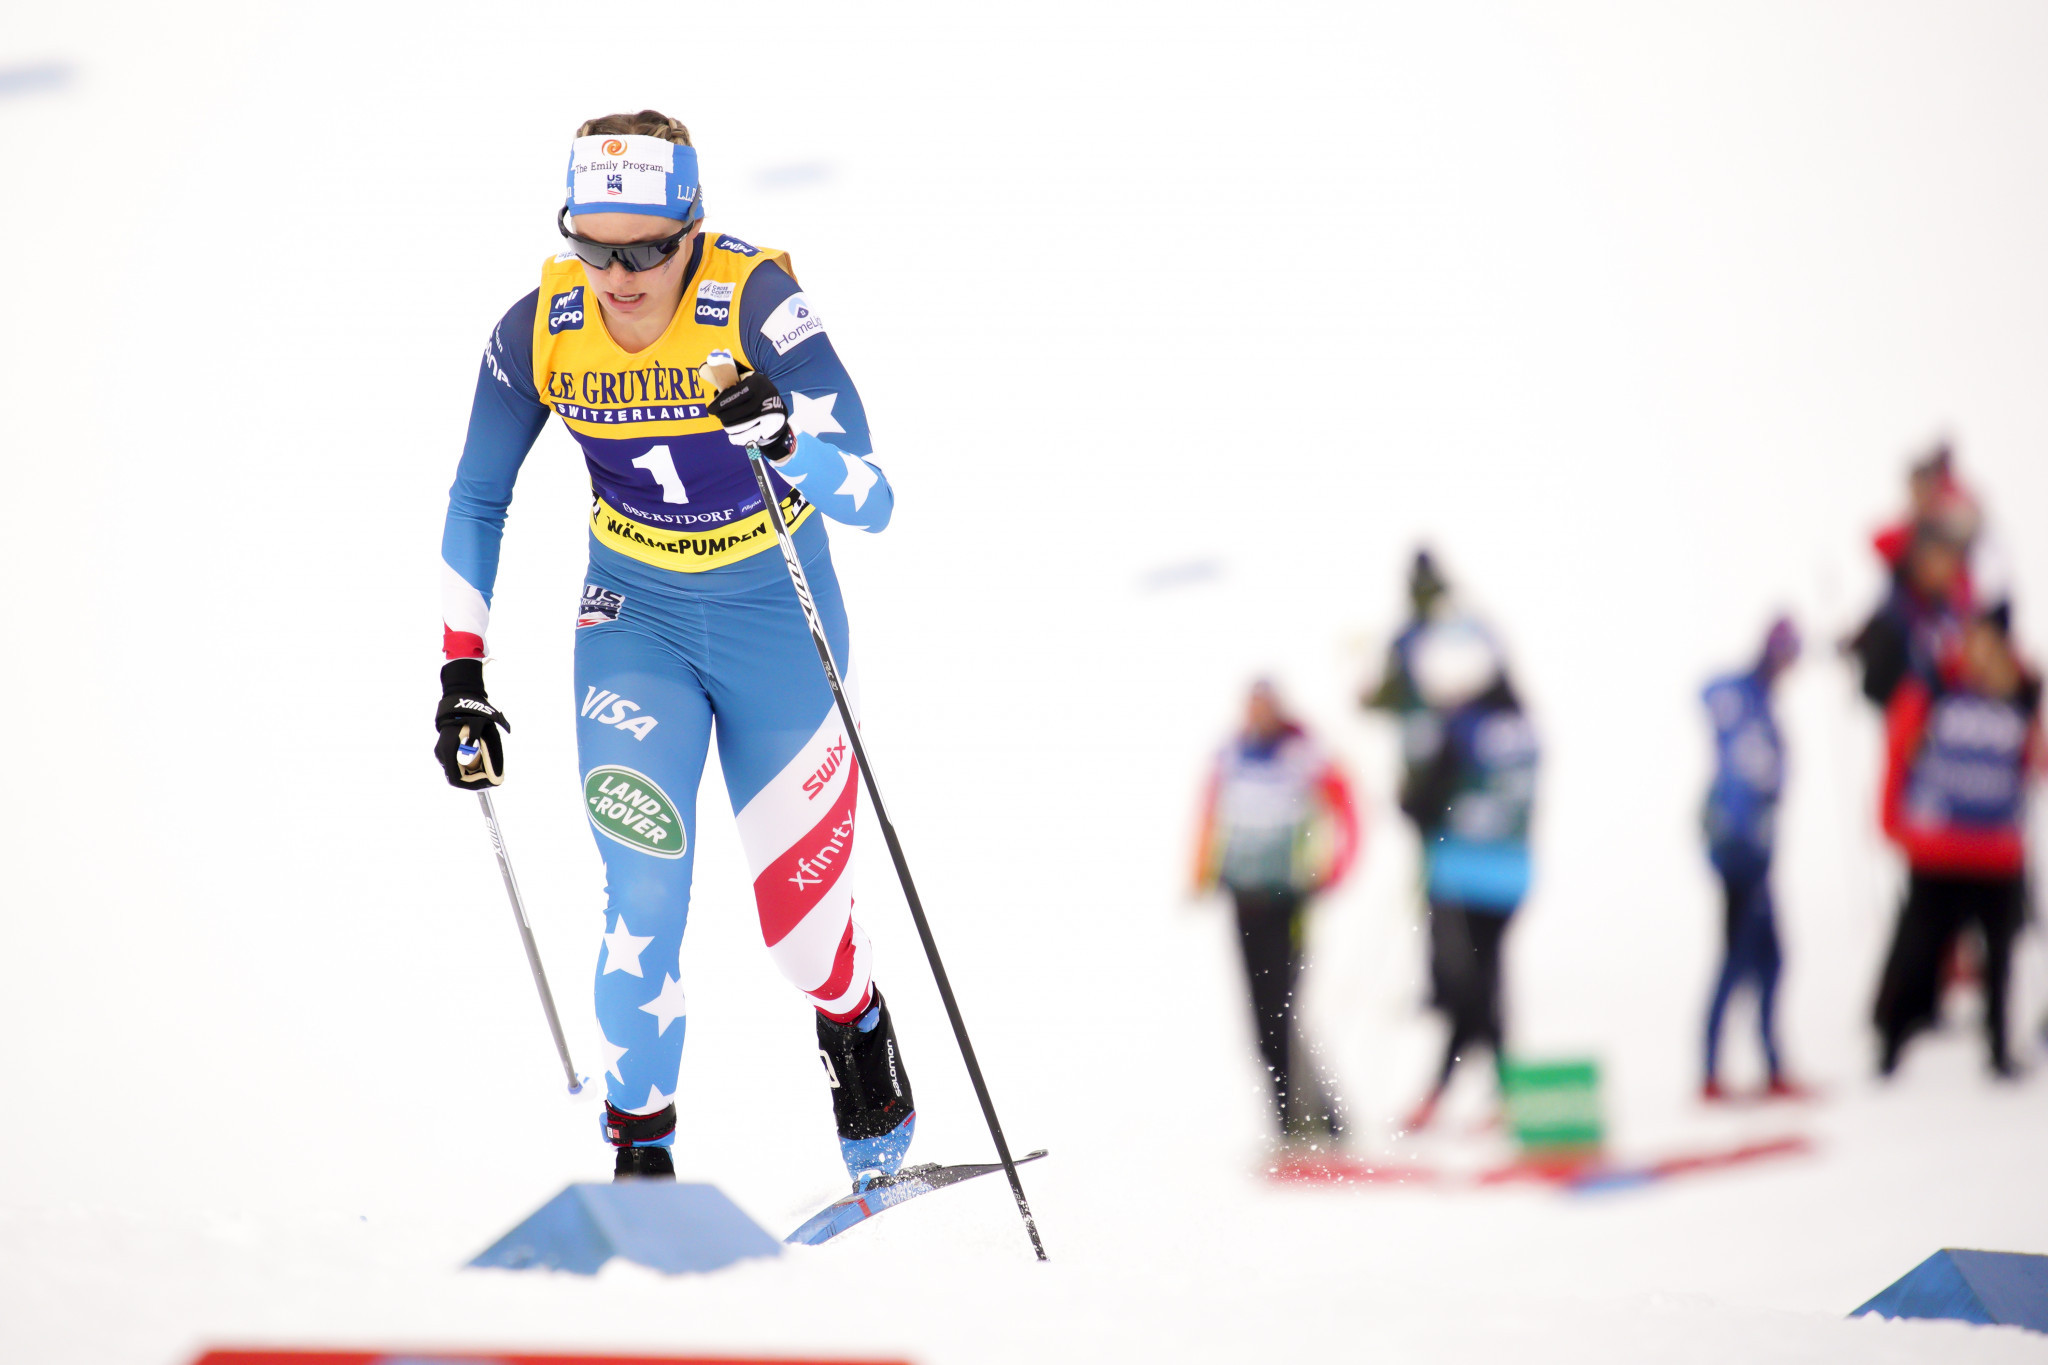 Hecker and Barton join American cross-country skiing set-up